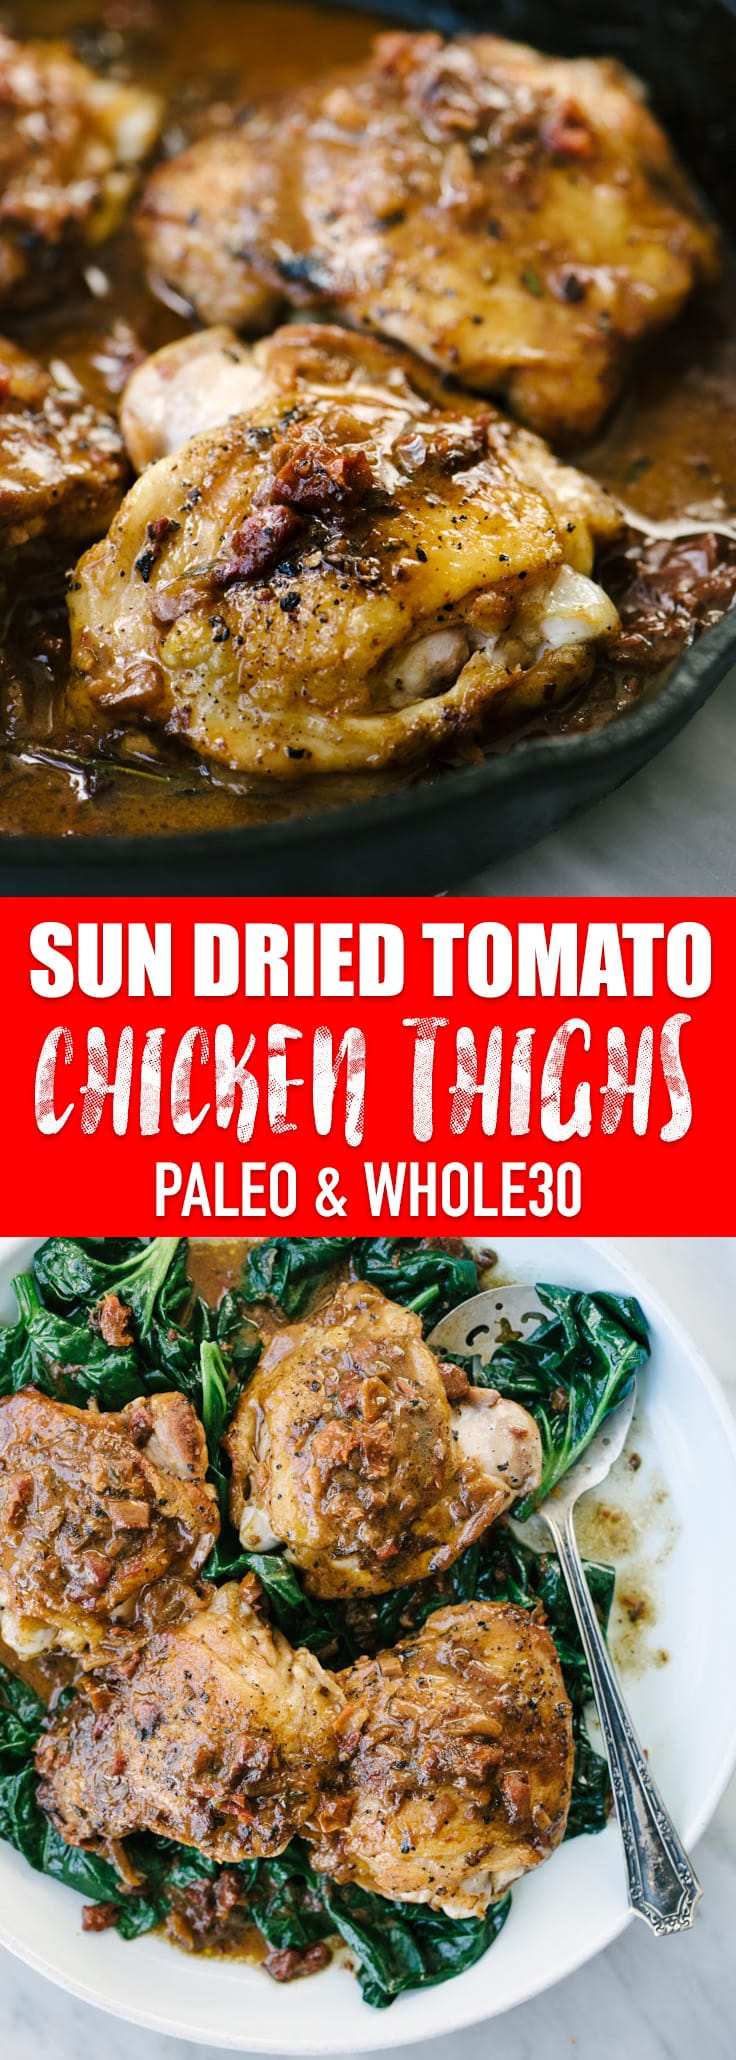 You will love this paleo and Whole30 compliant creamy sun-dried tomato chicken! It's rich, bold, and super addictive. This is an easy, fast, one pan, weeknight recipe the entire family will love. #paleo #whole30 #onepan #crispychicken #chickenthigh #recipe #wholefoods #realfood